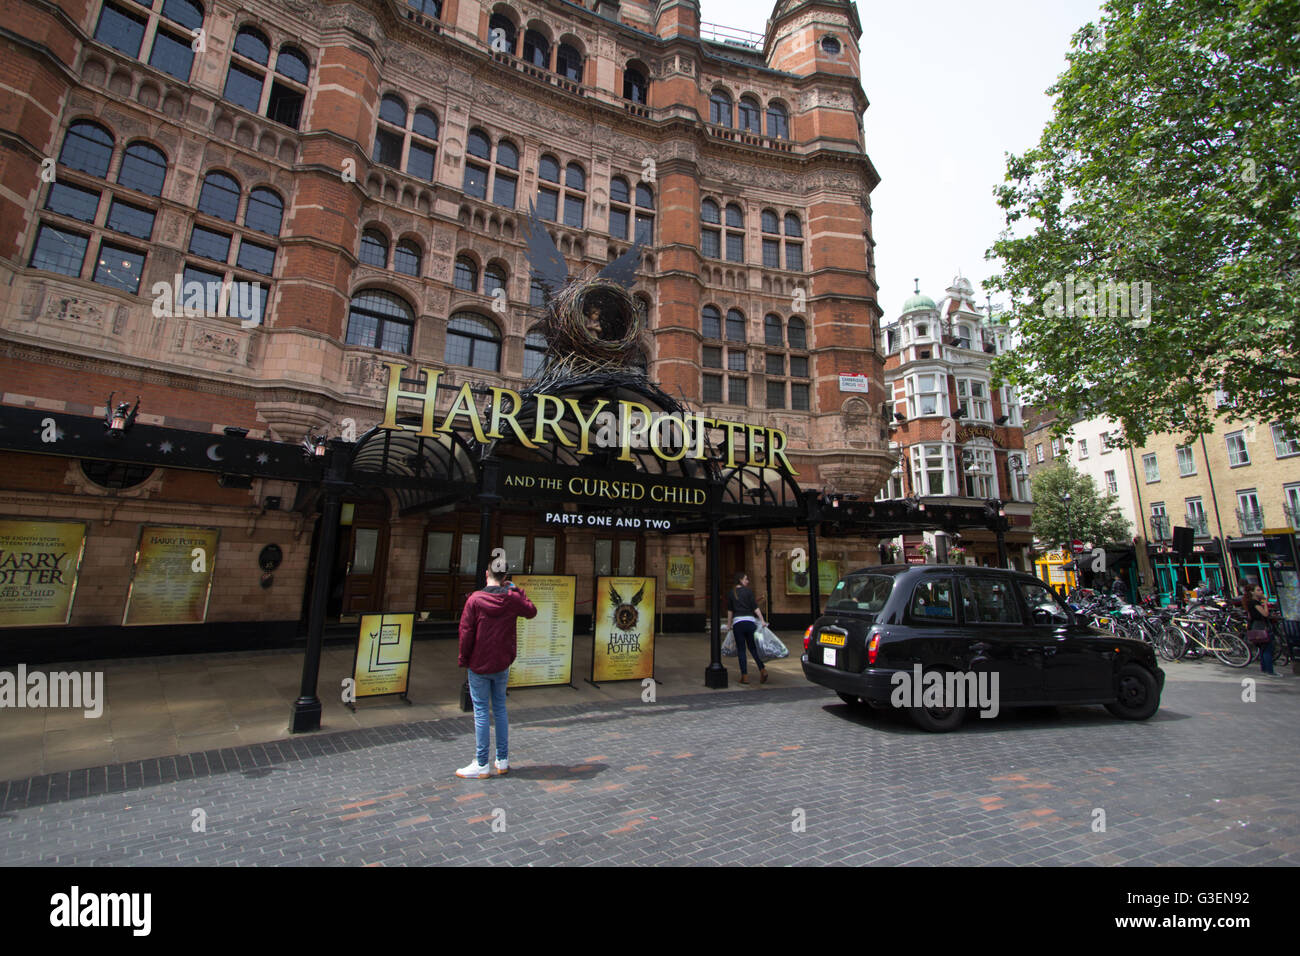 Harry Potter and the cursed child advertised on the Palace Theatre London - Stock Image